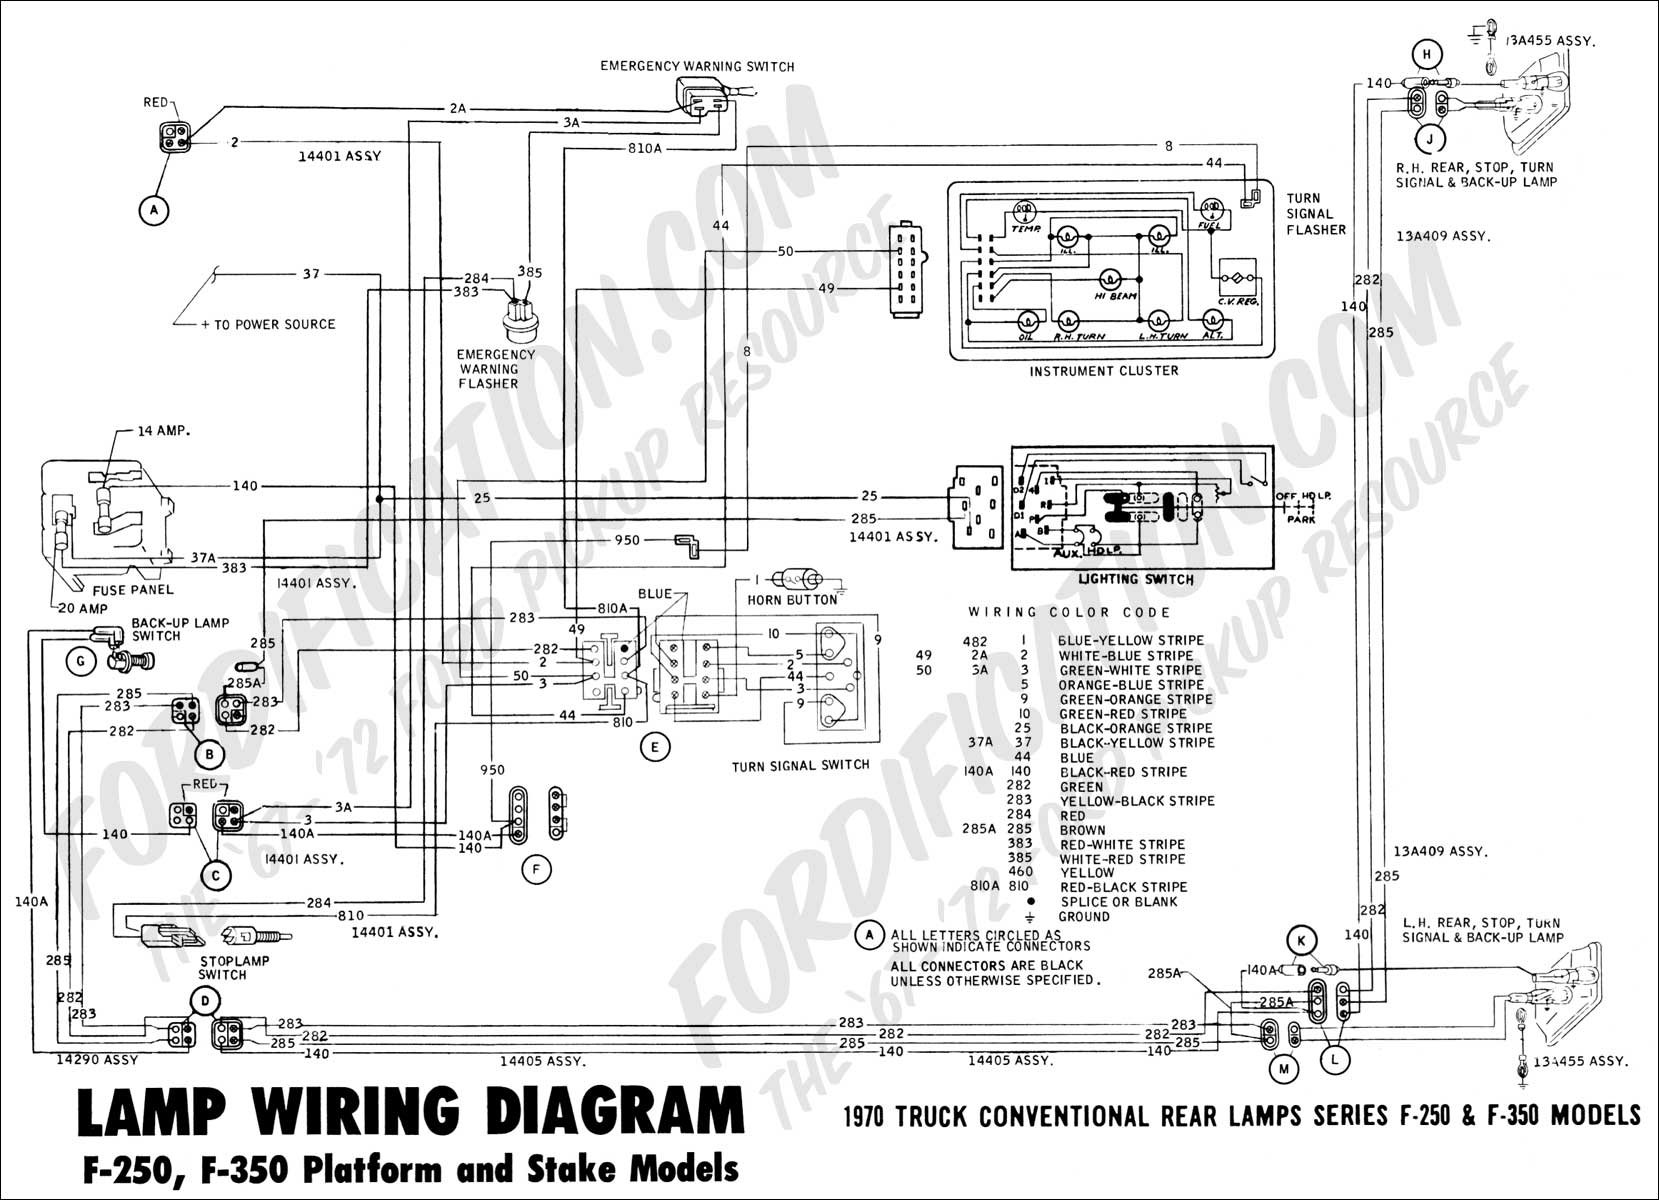 93 F150 Wiring Diagram Manual Guide 2000 Dodge Sel Ford F 150 Starter Solenoid Get Free Image About 94